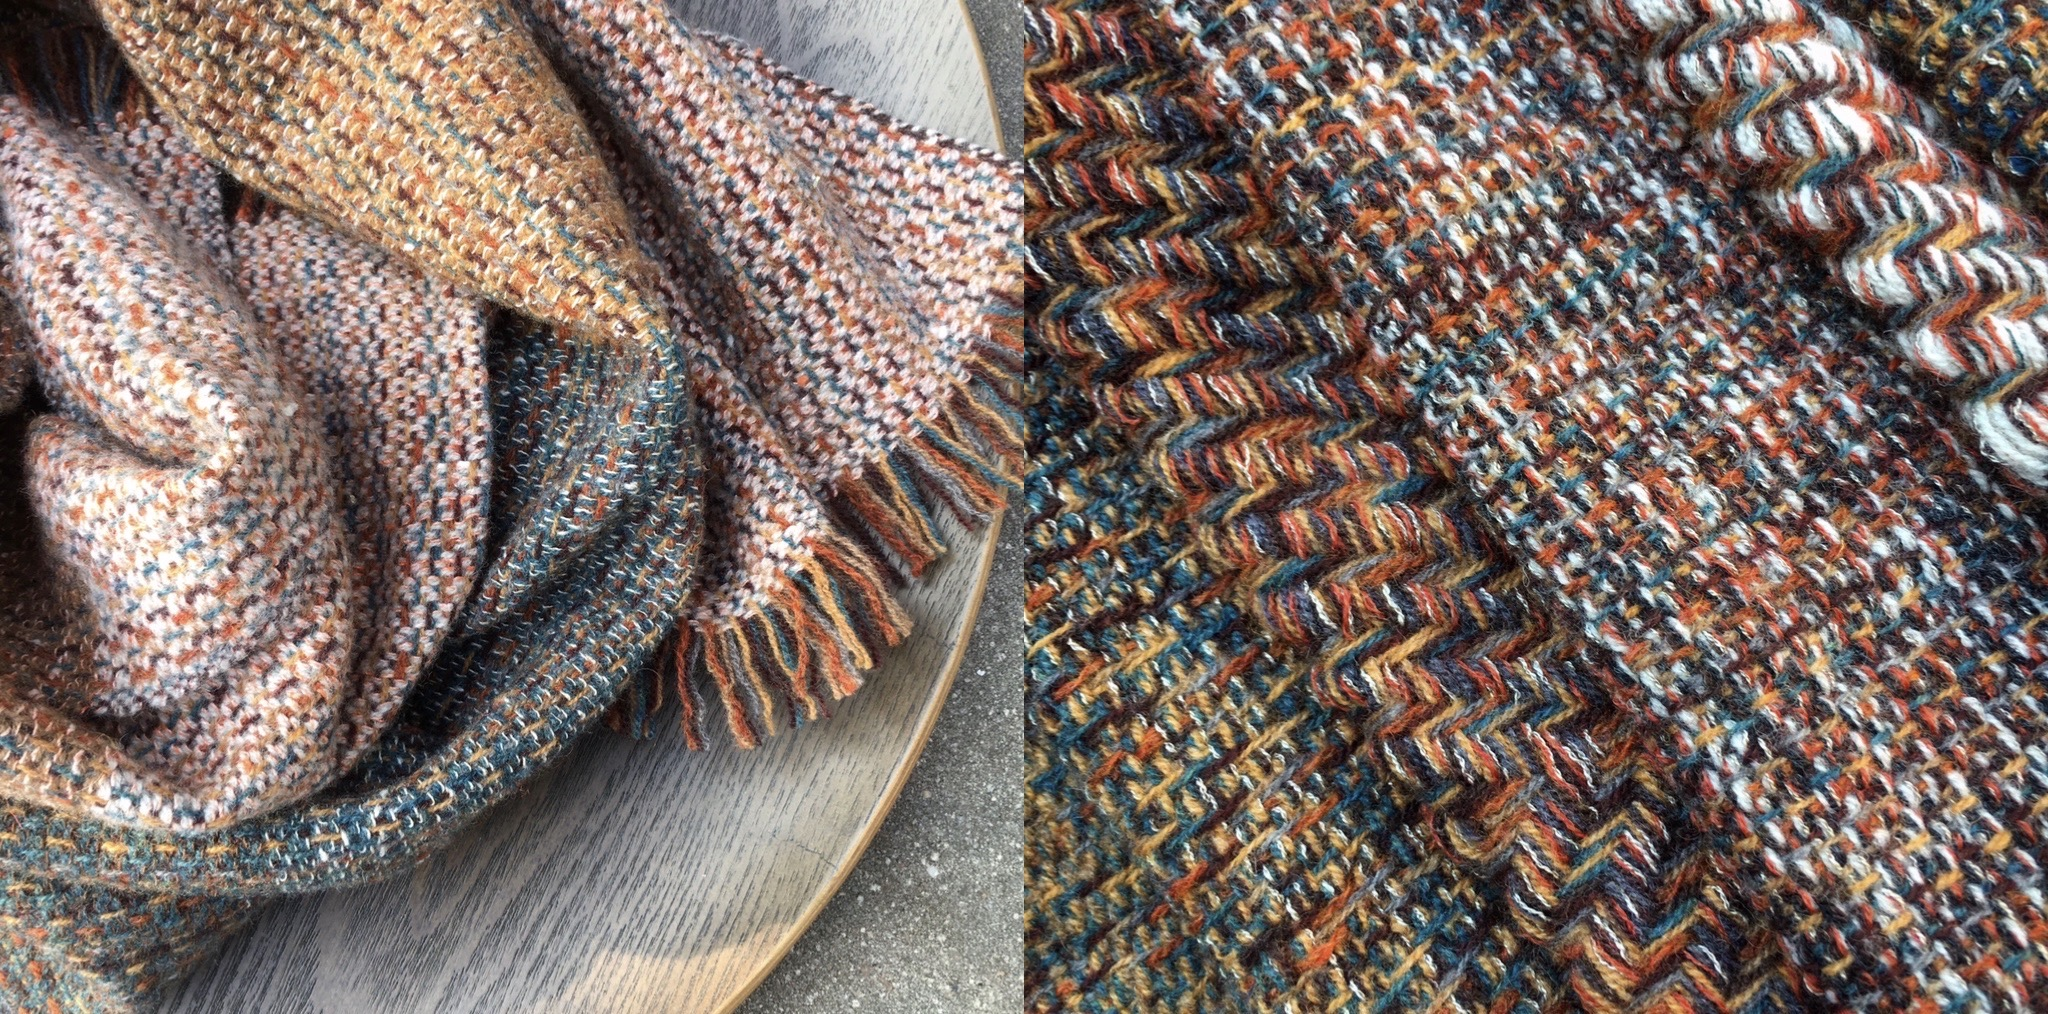 Handwoven scarves inspired by local landscape